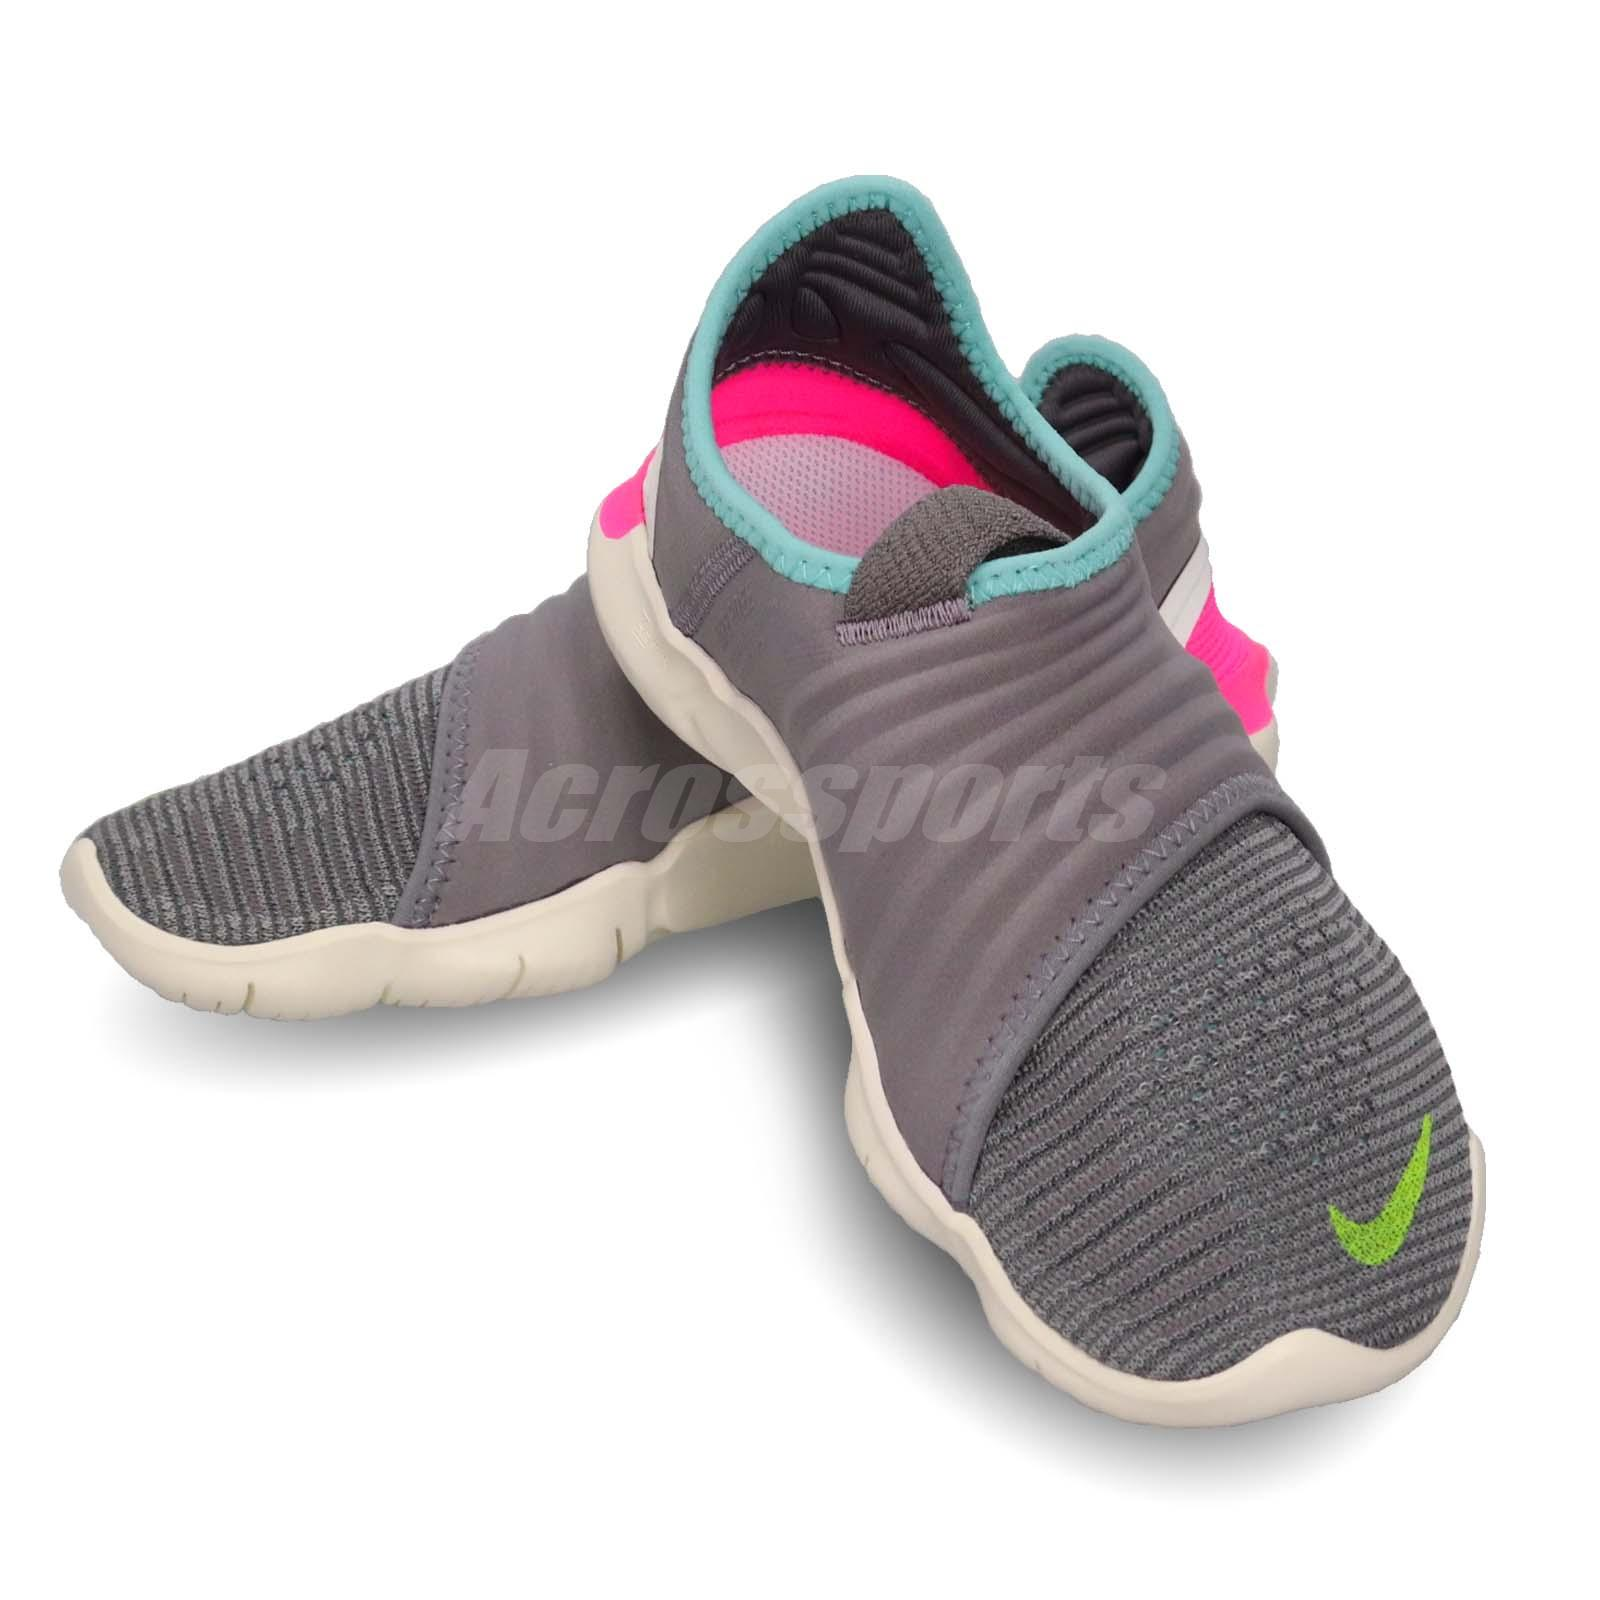 7ac3aeb77439c Details about Nike Wmns Free RN Flyknit 3.0 Grey Green Pink Women Running  Shoes AQ5708-002